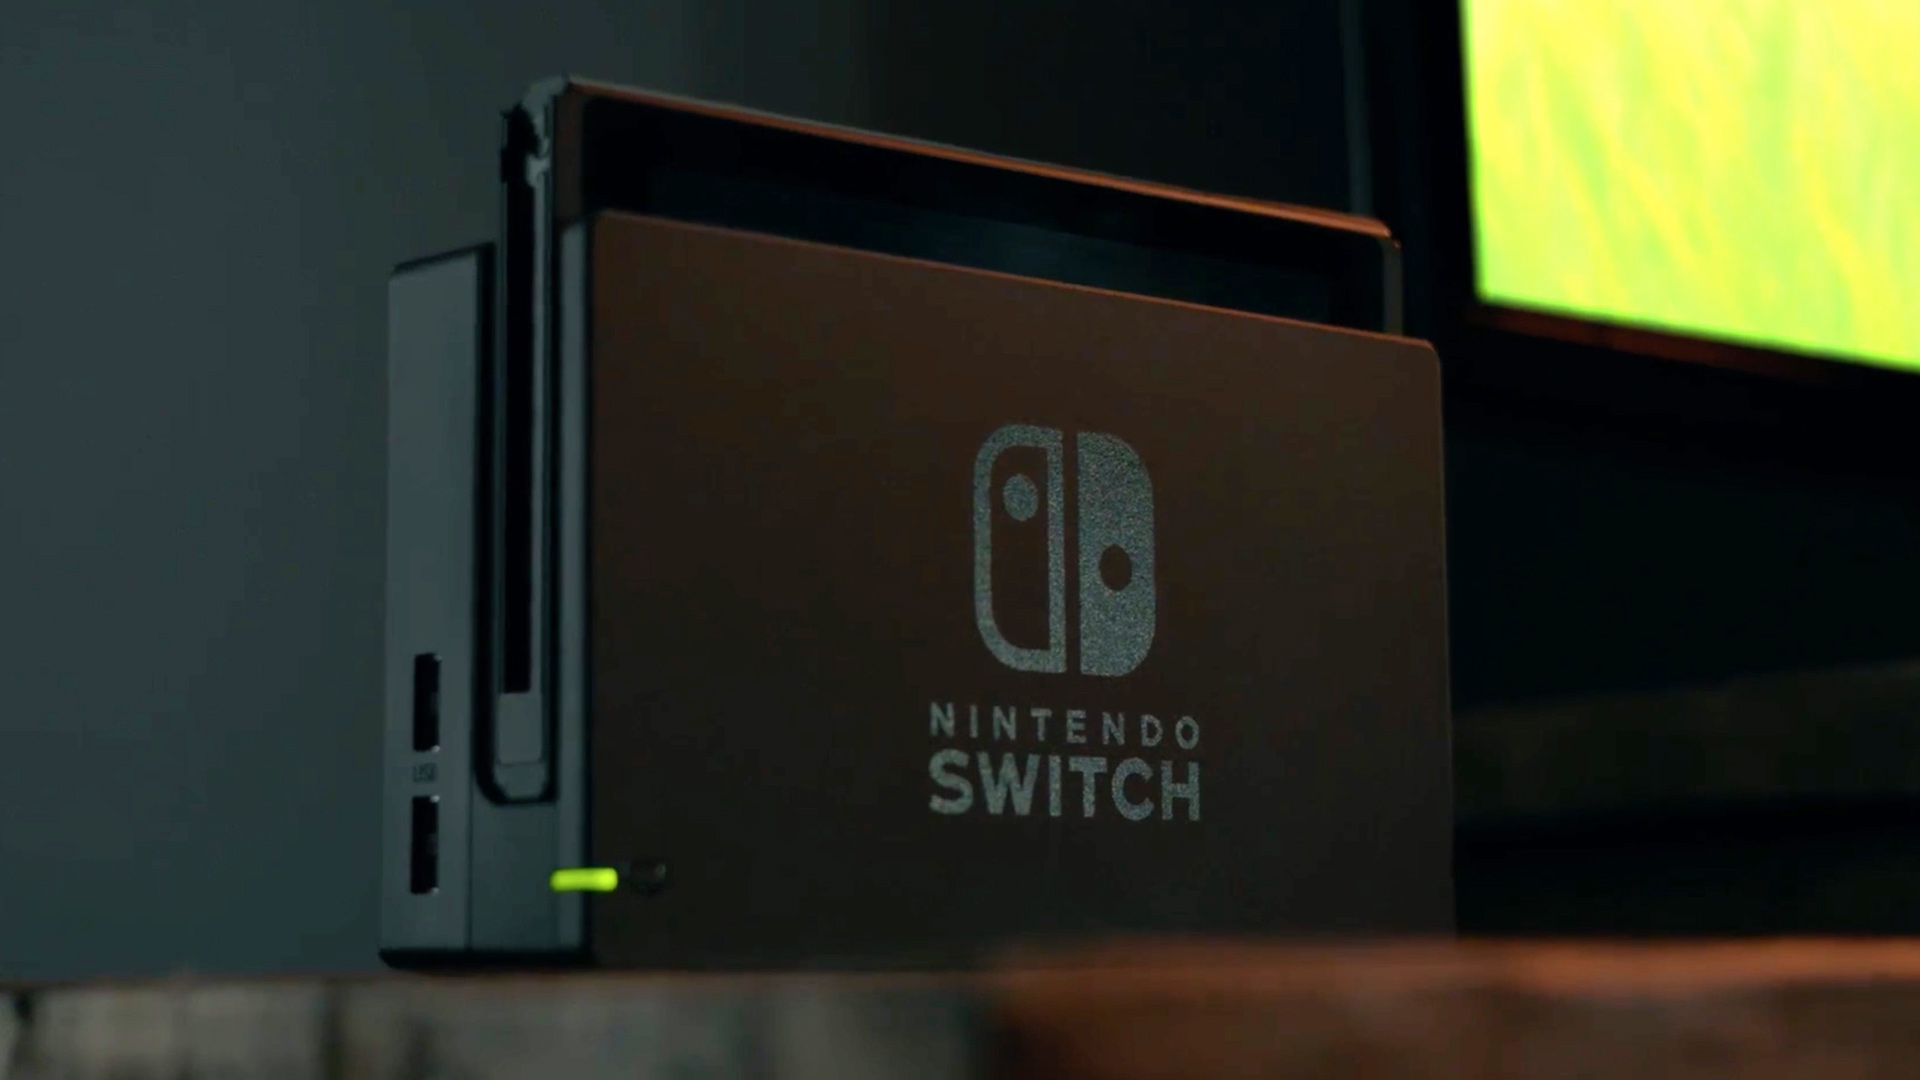 Nintendo Switch Units With Patched Hardware Vulnerability Spotted